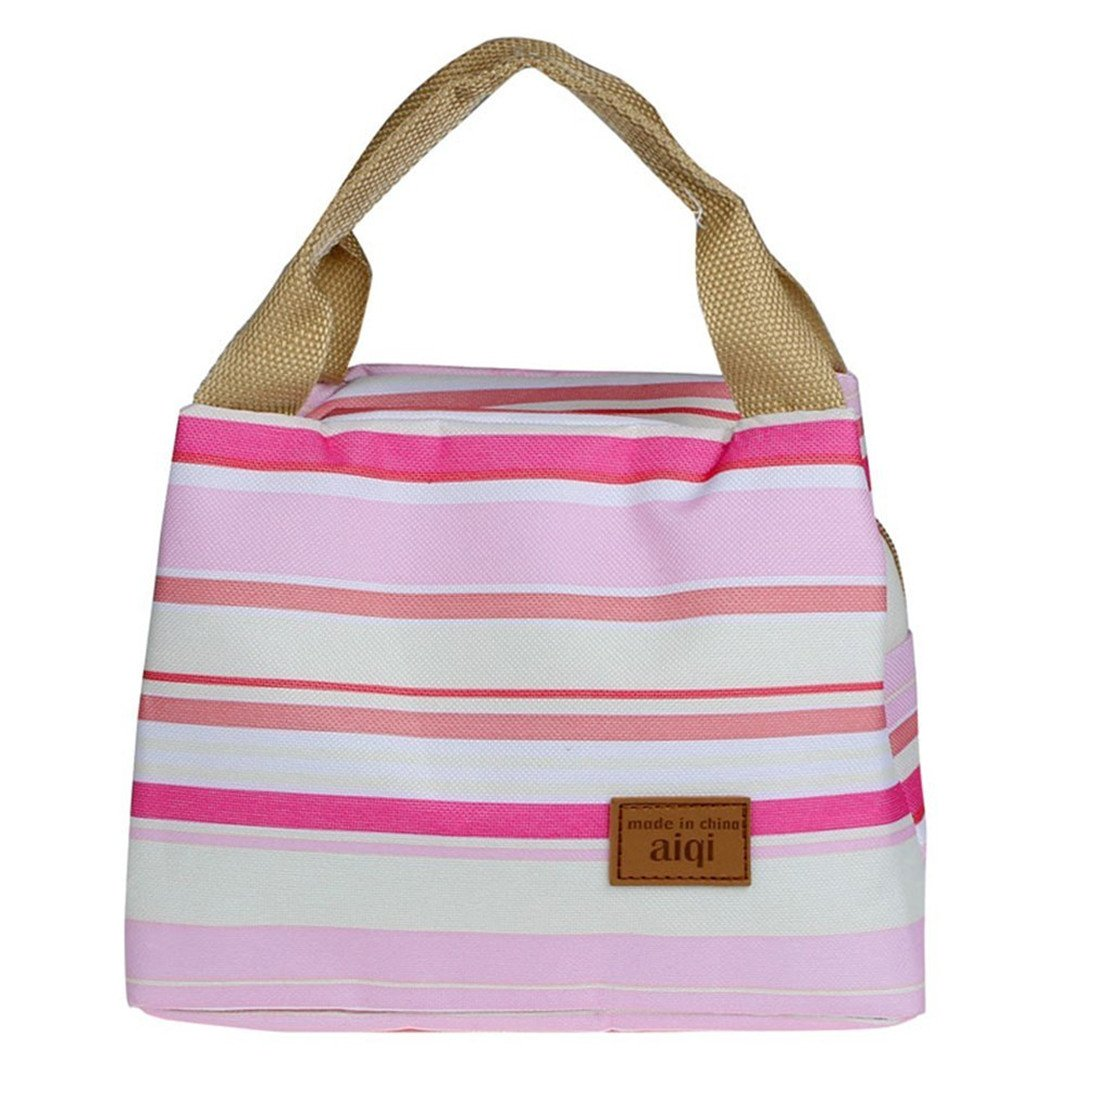 9861230c7488 ZHOUBA Insulated Thermal Cooler Striped Lunch Bag Travel Picnic ...